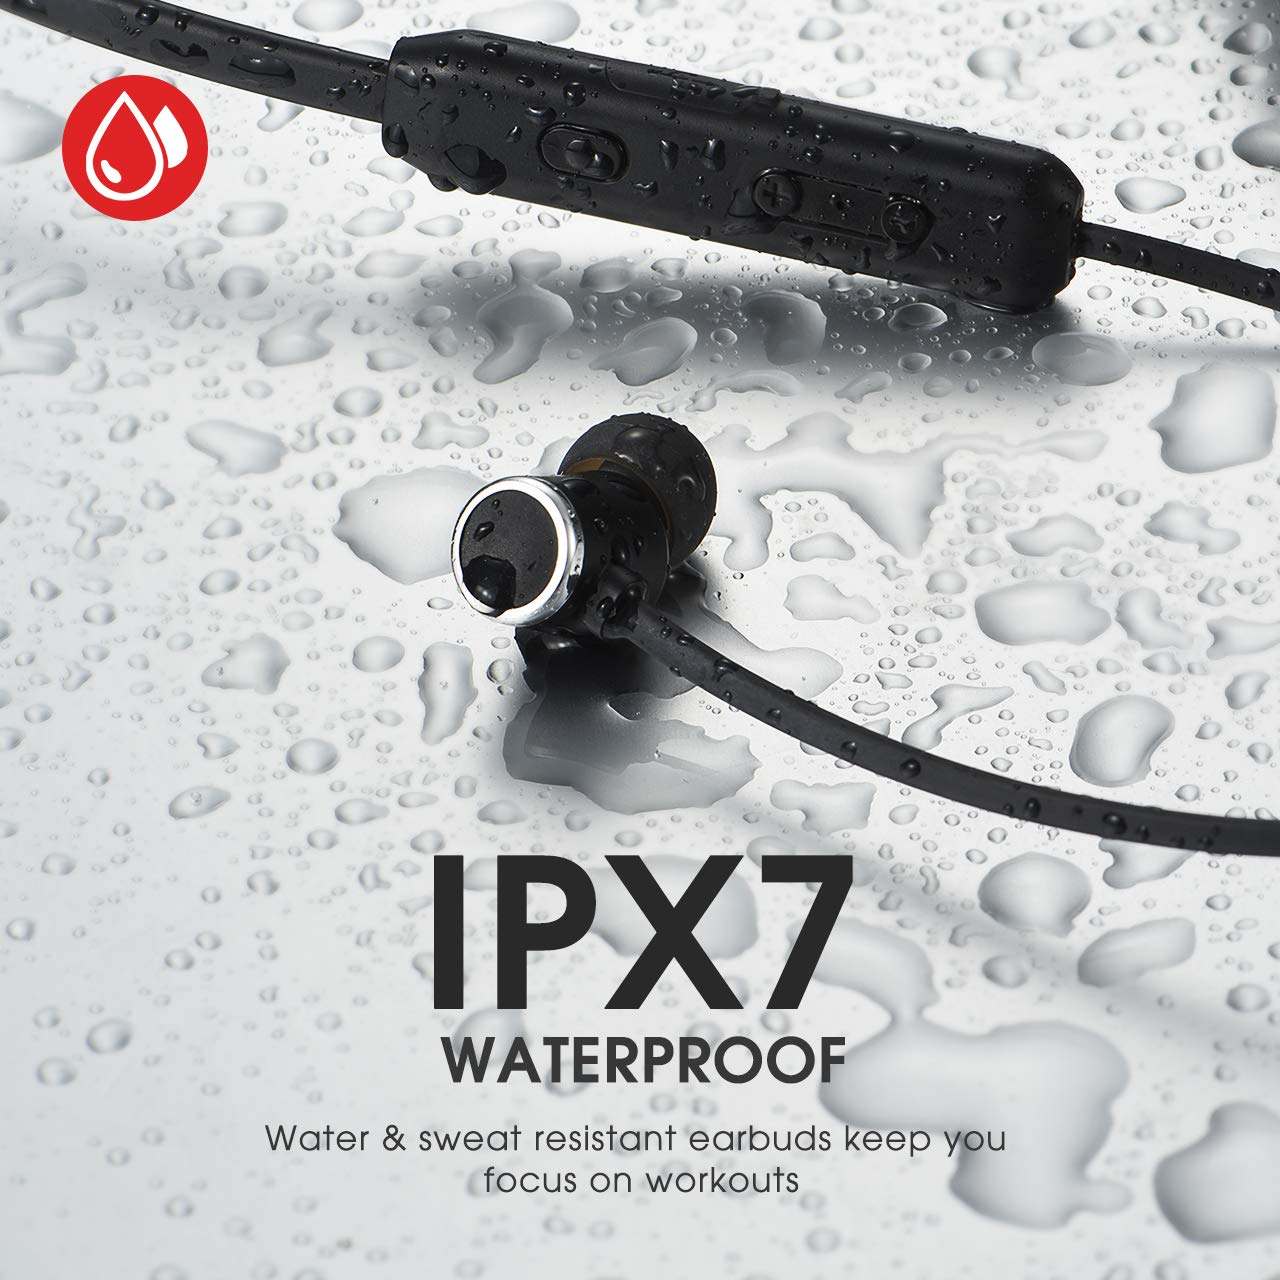 Mpow A7 Bluetooth Headphones Hifi Stereo Headsets with CVC 6.0 Noise Cancellation Wireless Neckband Headphones with Bluetooth 5.0 Magnetic In-Ear Earbuds with IPX7 Waterproof for Sports